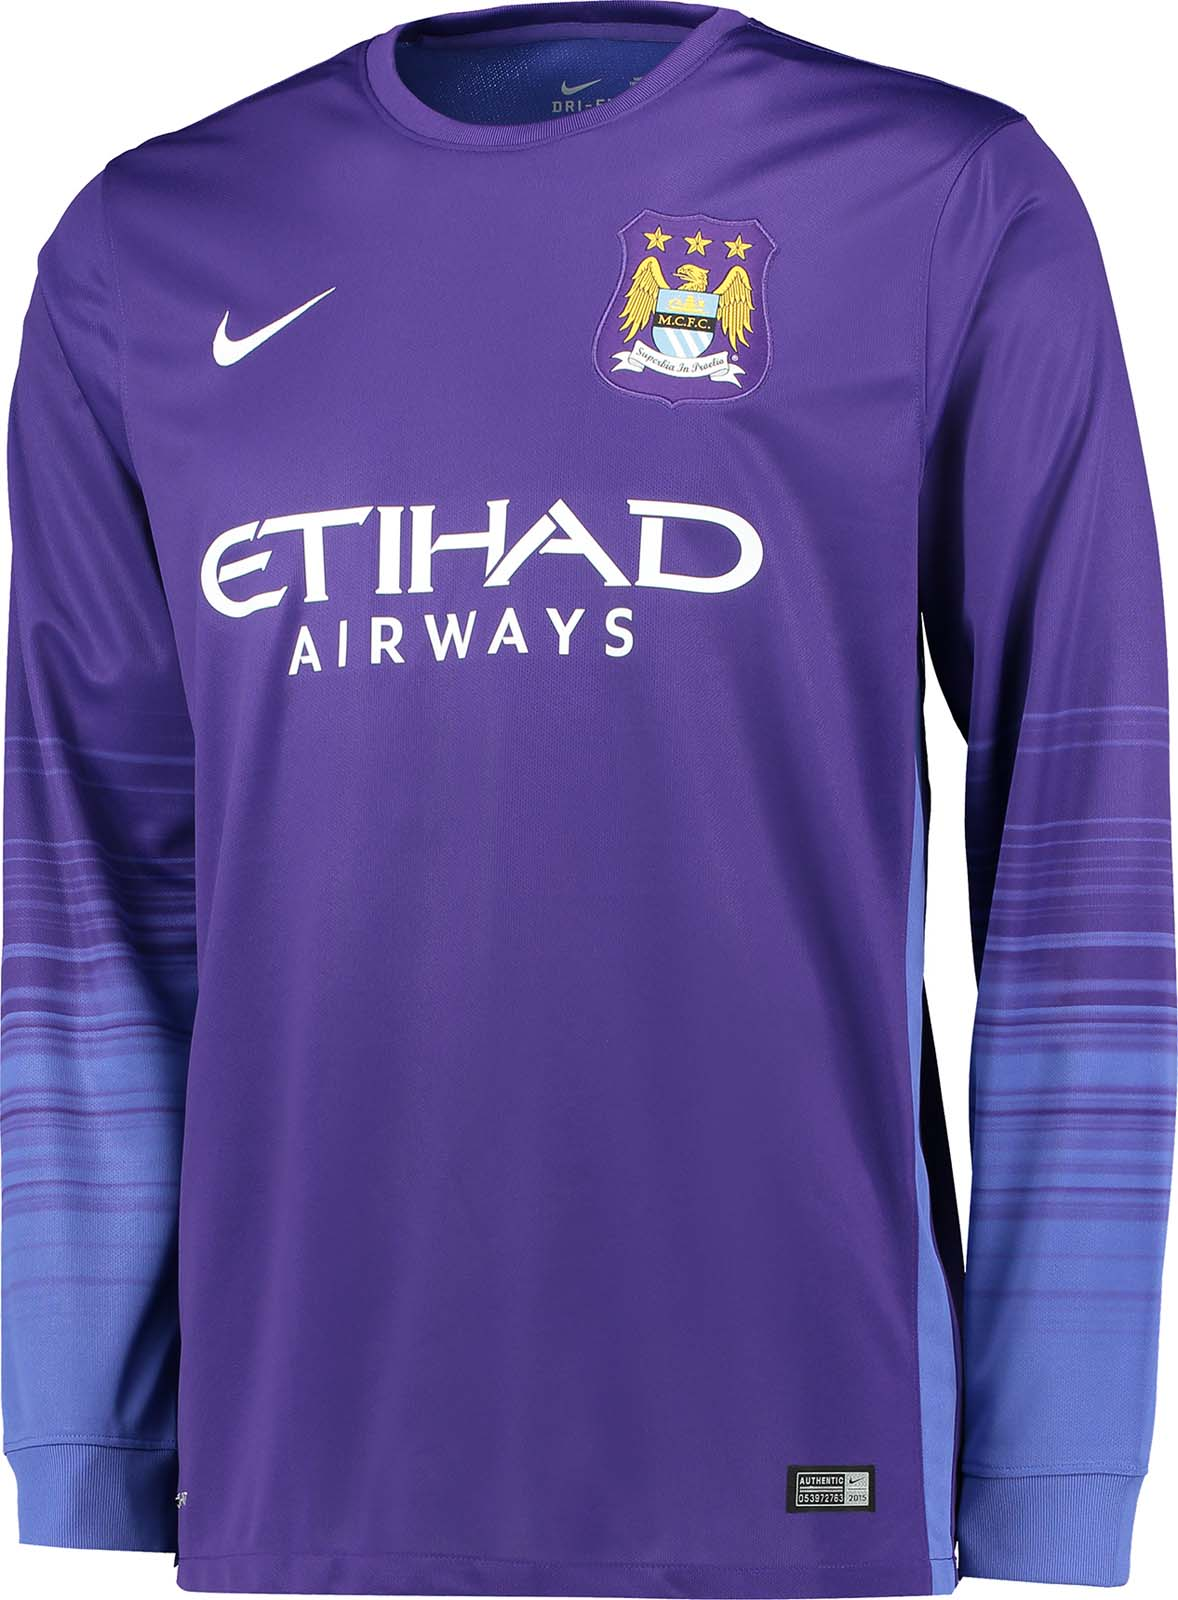 8fcd7f50e Manchester City Away Shirt 2015 16 – EDGE Engineering and Consulting ...